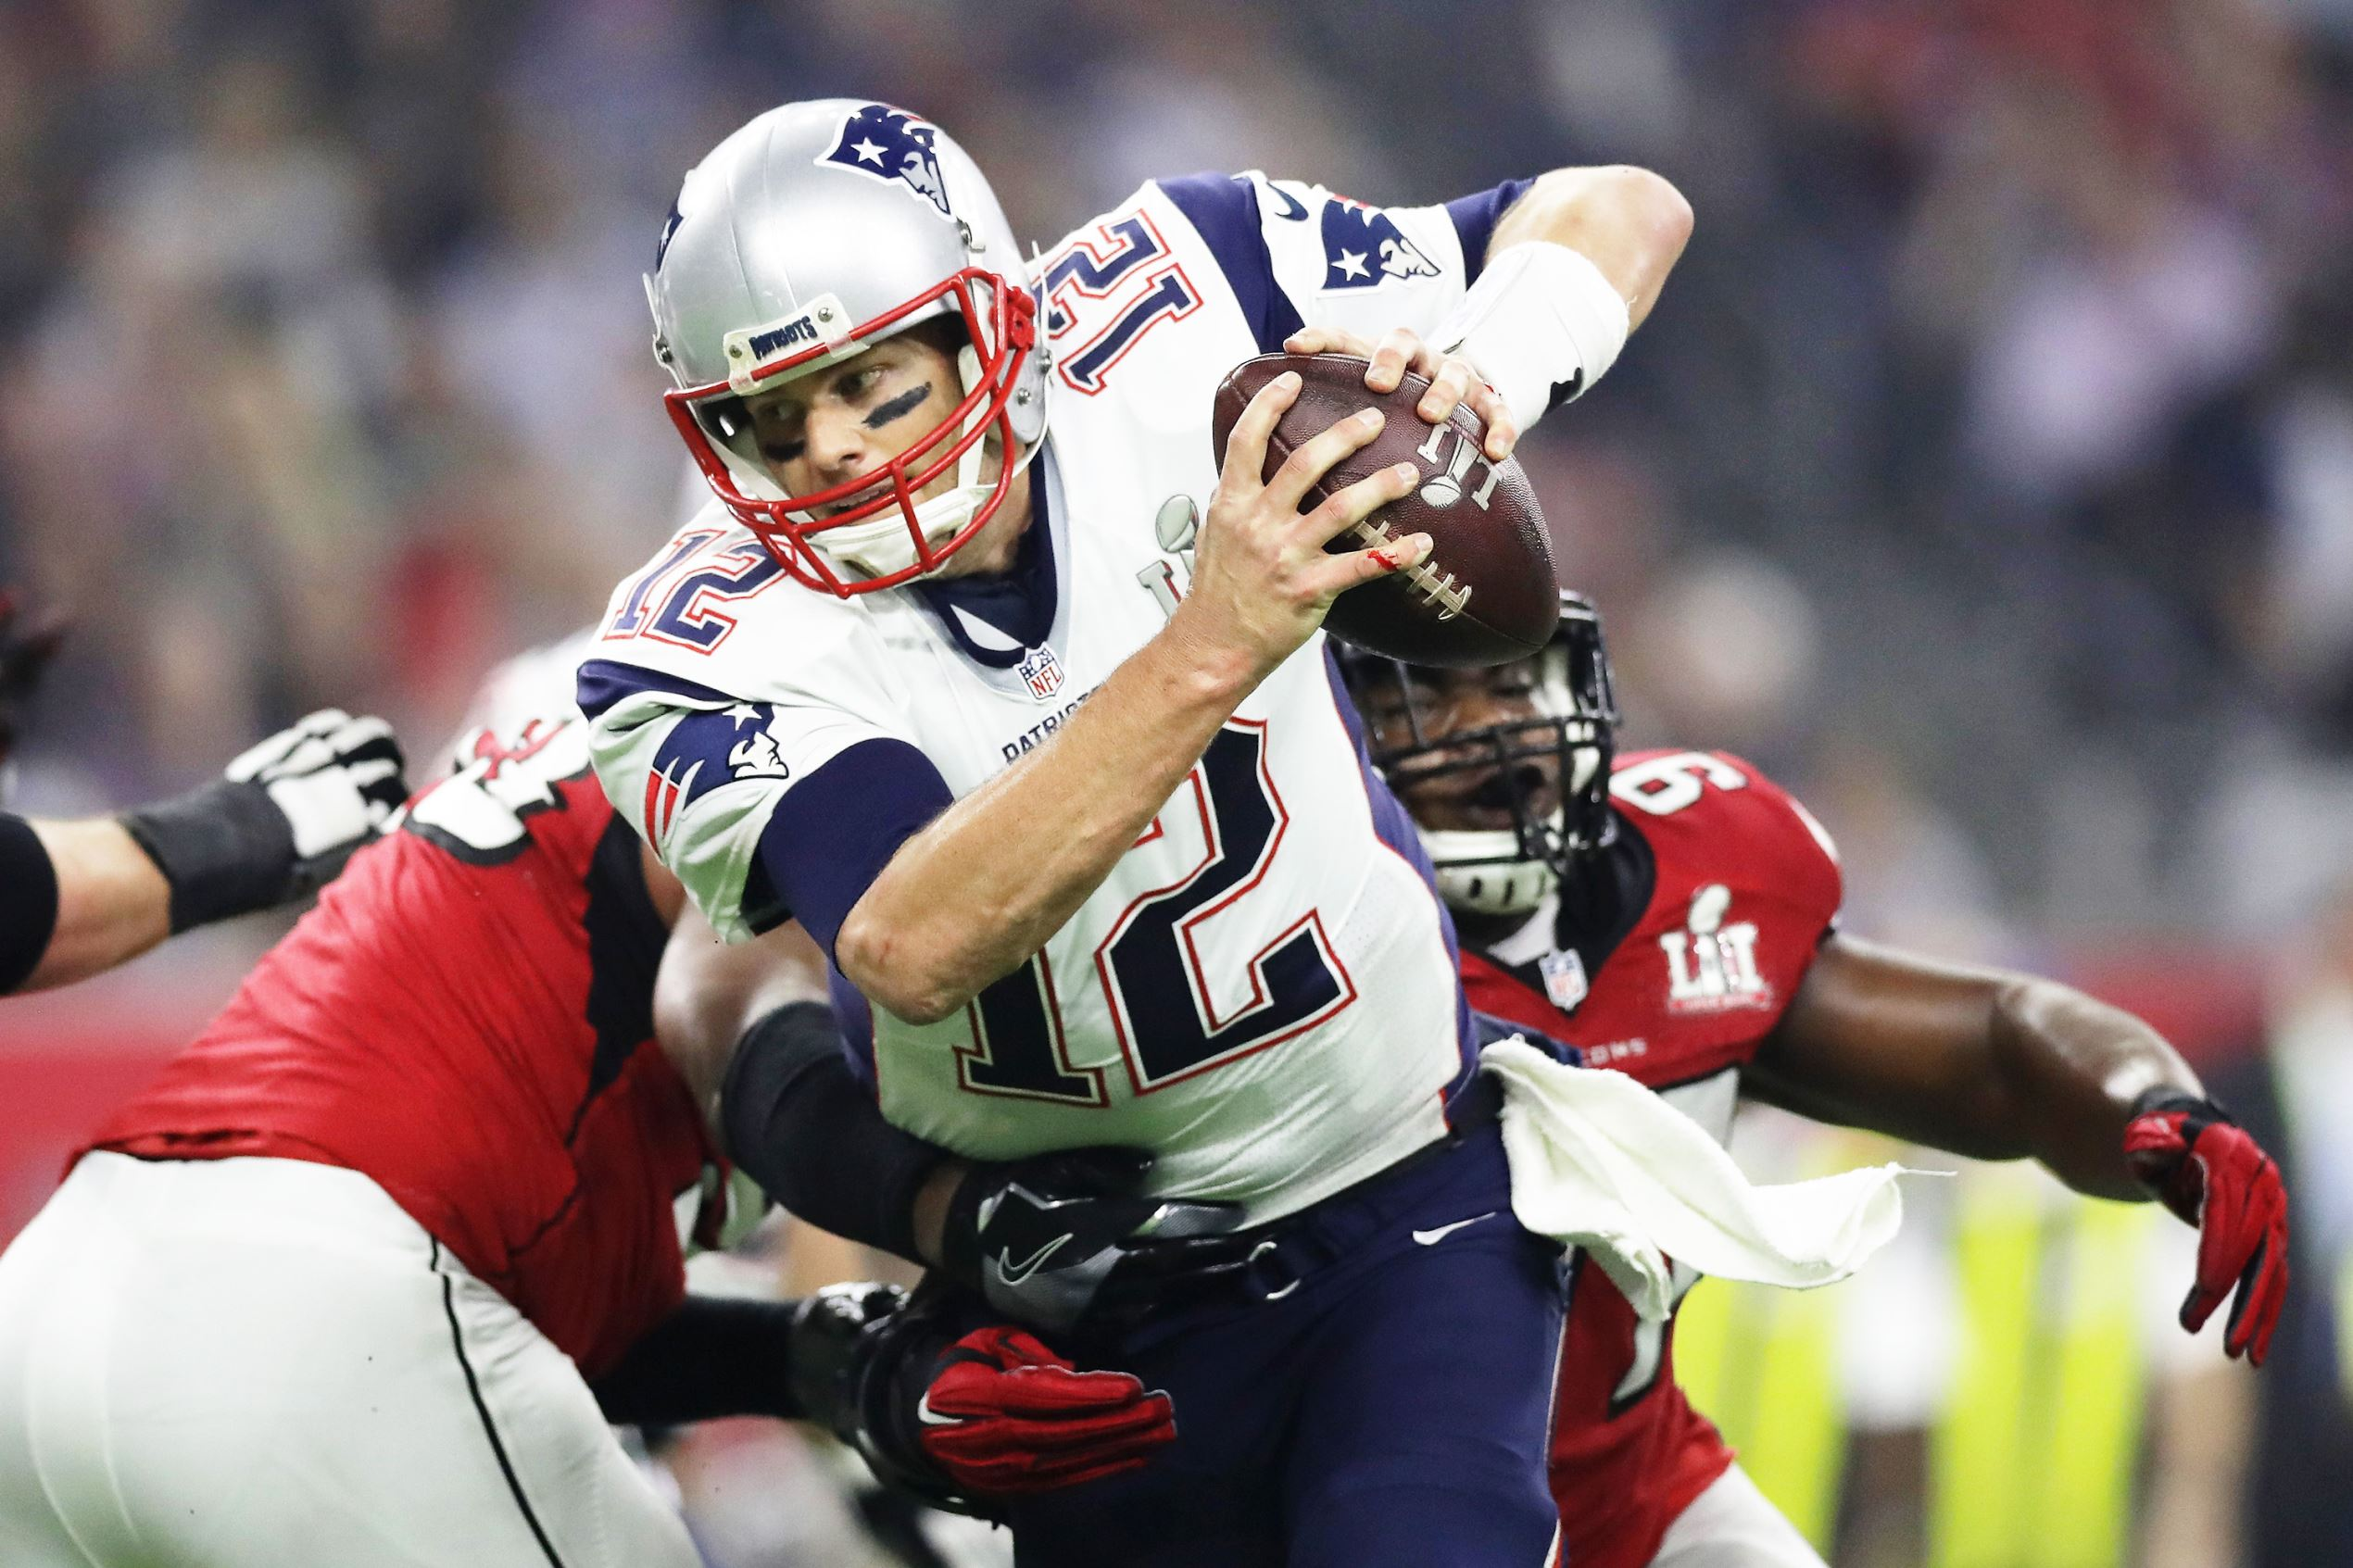 Slide 3 of 29: Tom Brady #12 of the New England Patriots is sacked by Grady Jarrett #97 of the Atlanta Falcons in the fourth quarter during Super Bowl 51 at NRG Stadium on Feb. 5, in Houston, Texas.